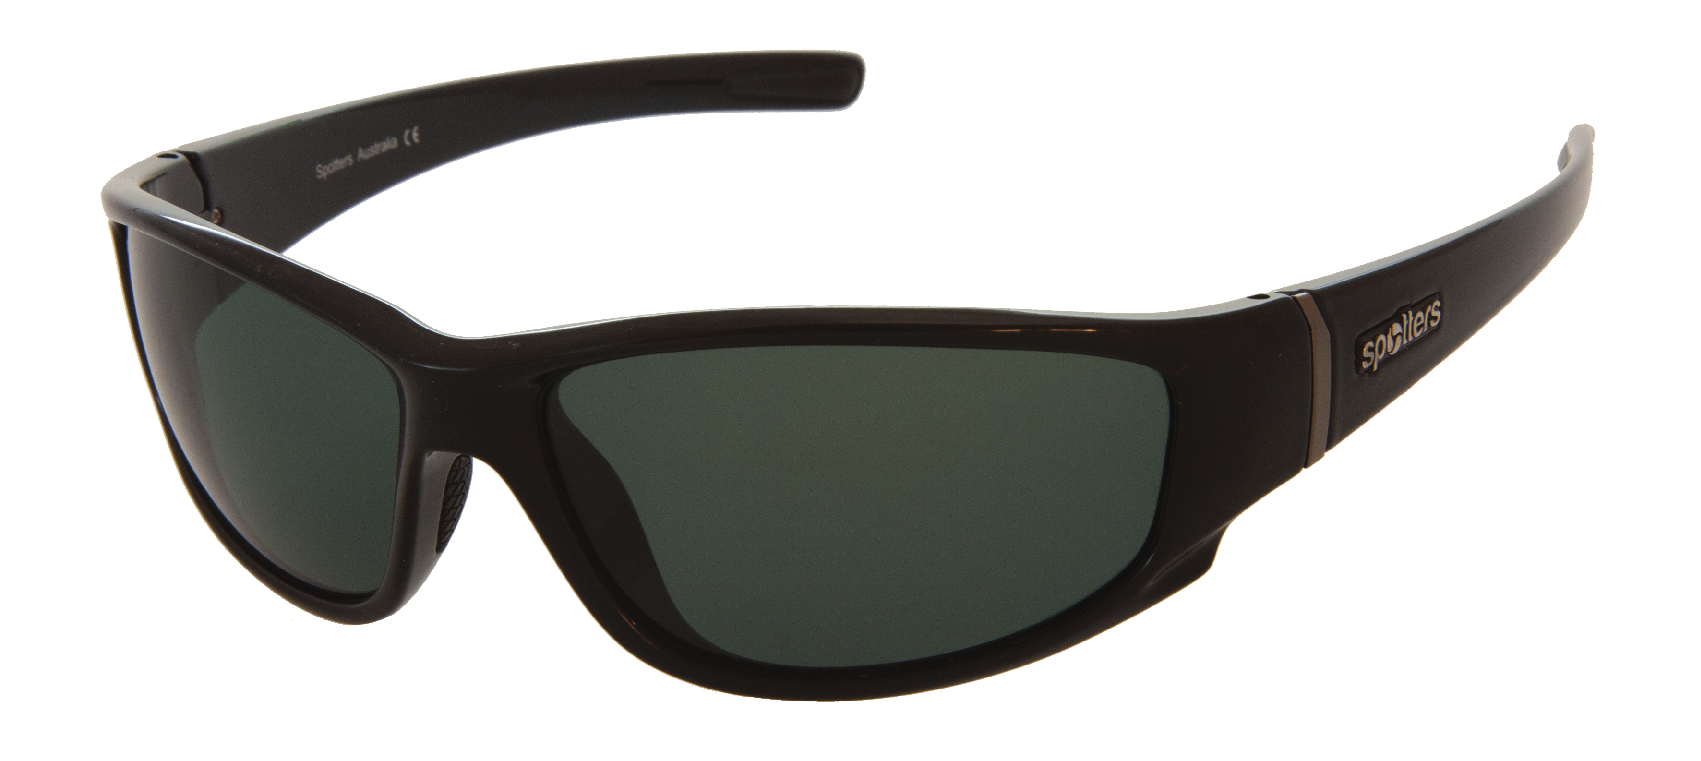 a6ae958ce1 Spotters Cristo Sunglasses - Cristo Stone Gloss Black With Polarised Lenses